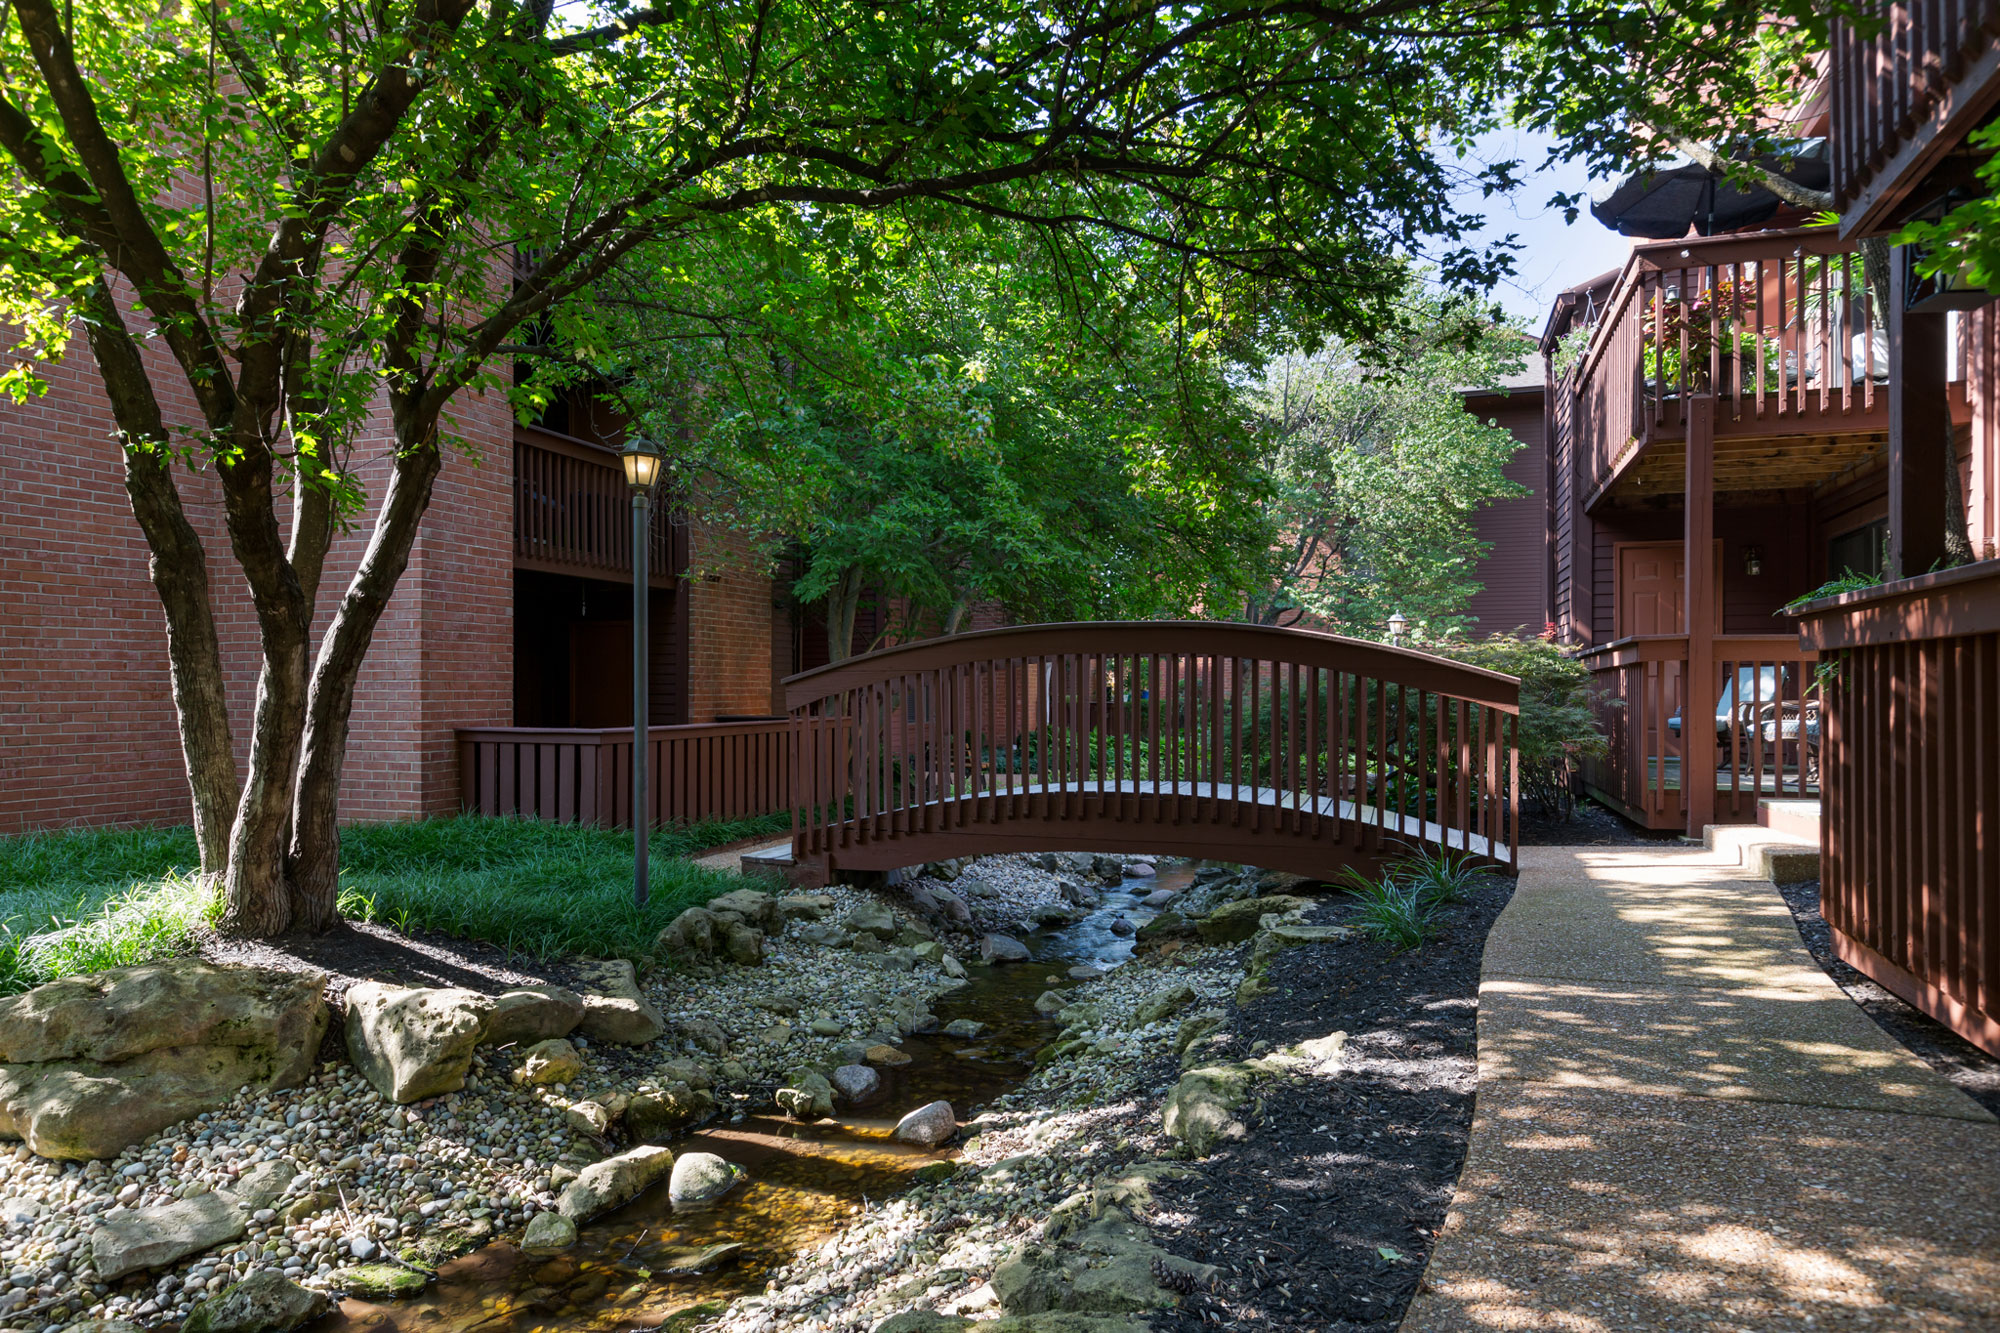 Bridge at Chesterfield Villages with wooded coverage